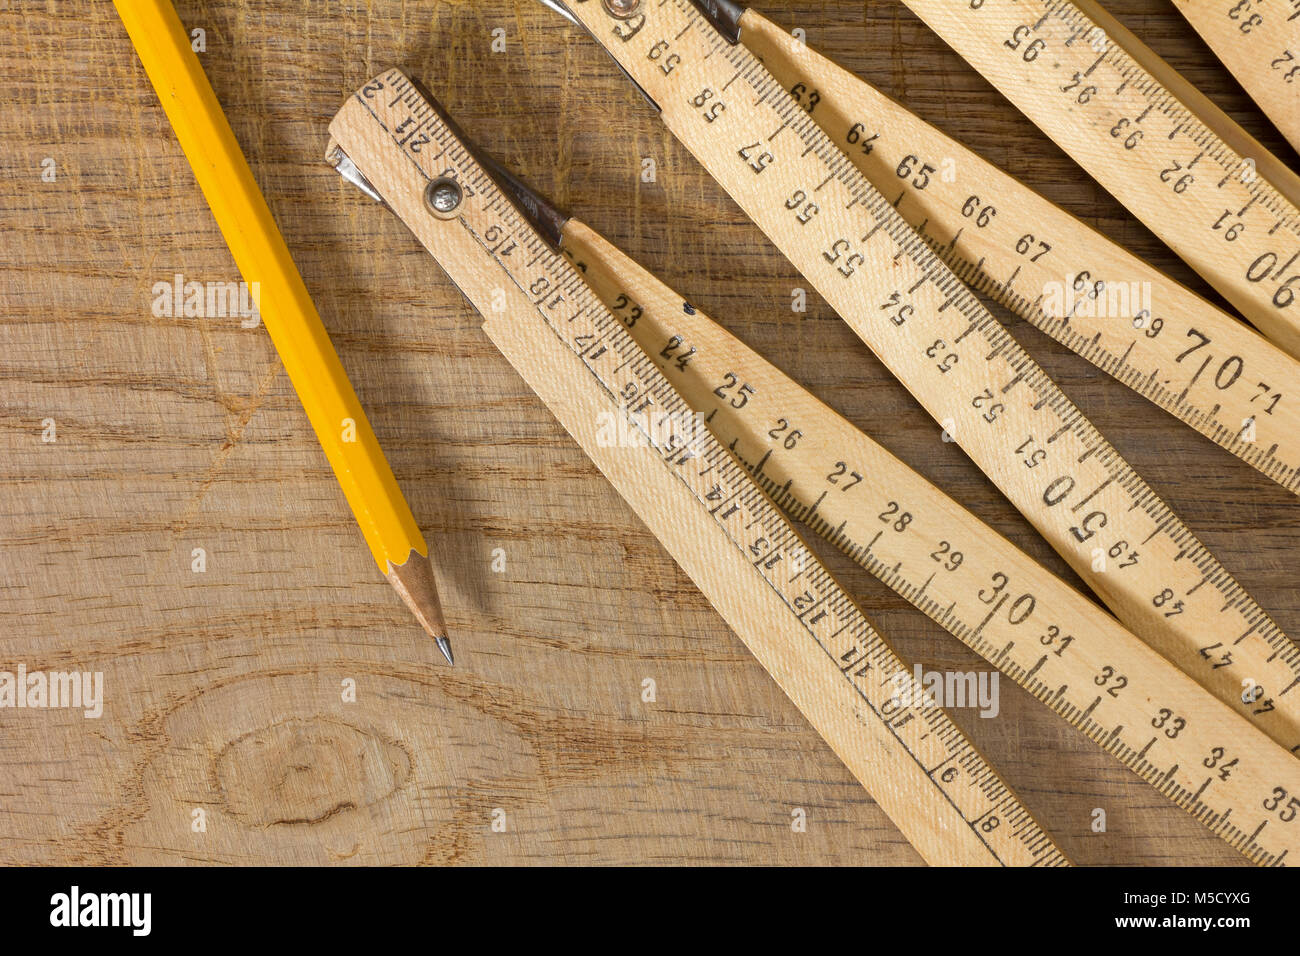 A measuring stick and a pencil on an old wooden table - Stock Image